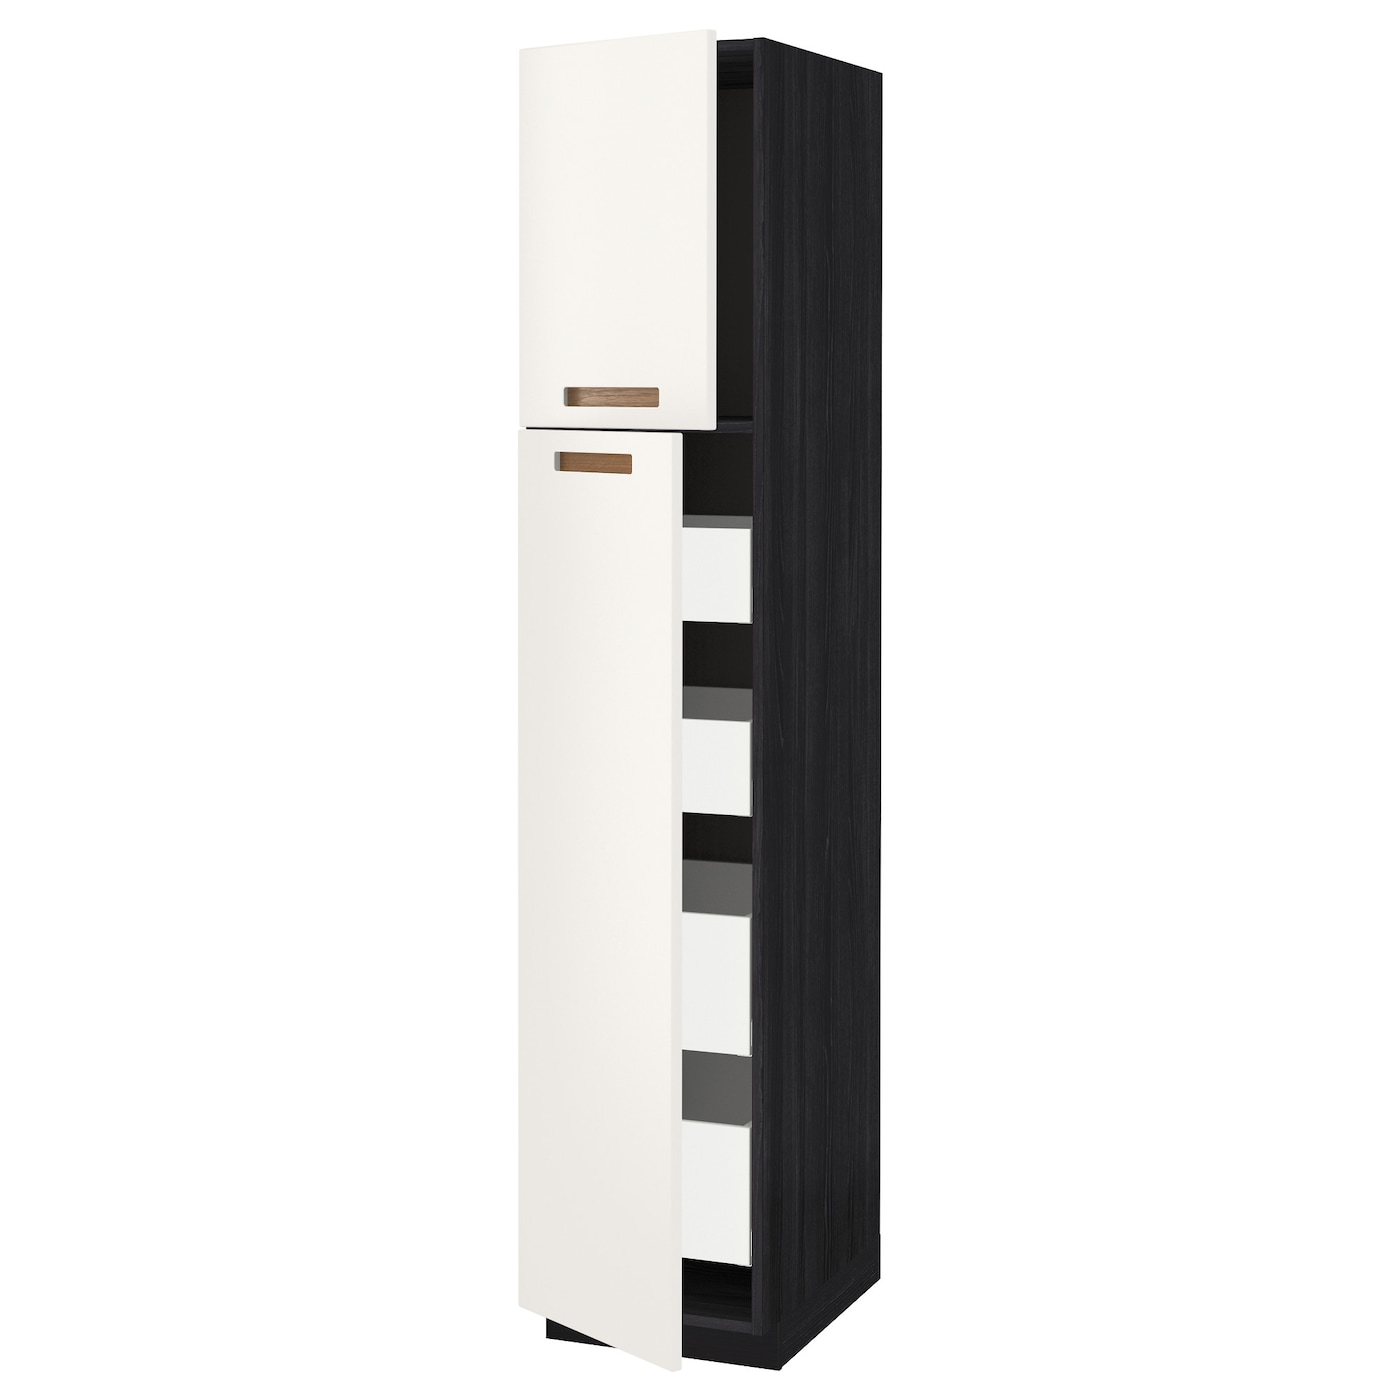 IKEA METOD hi cab w 2 doors/4 drawers You can choose to mount the door on the right or left side.